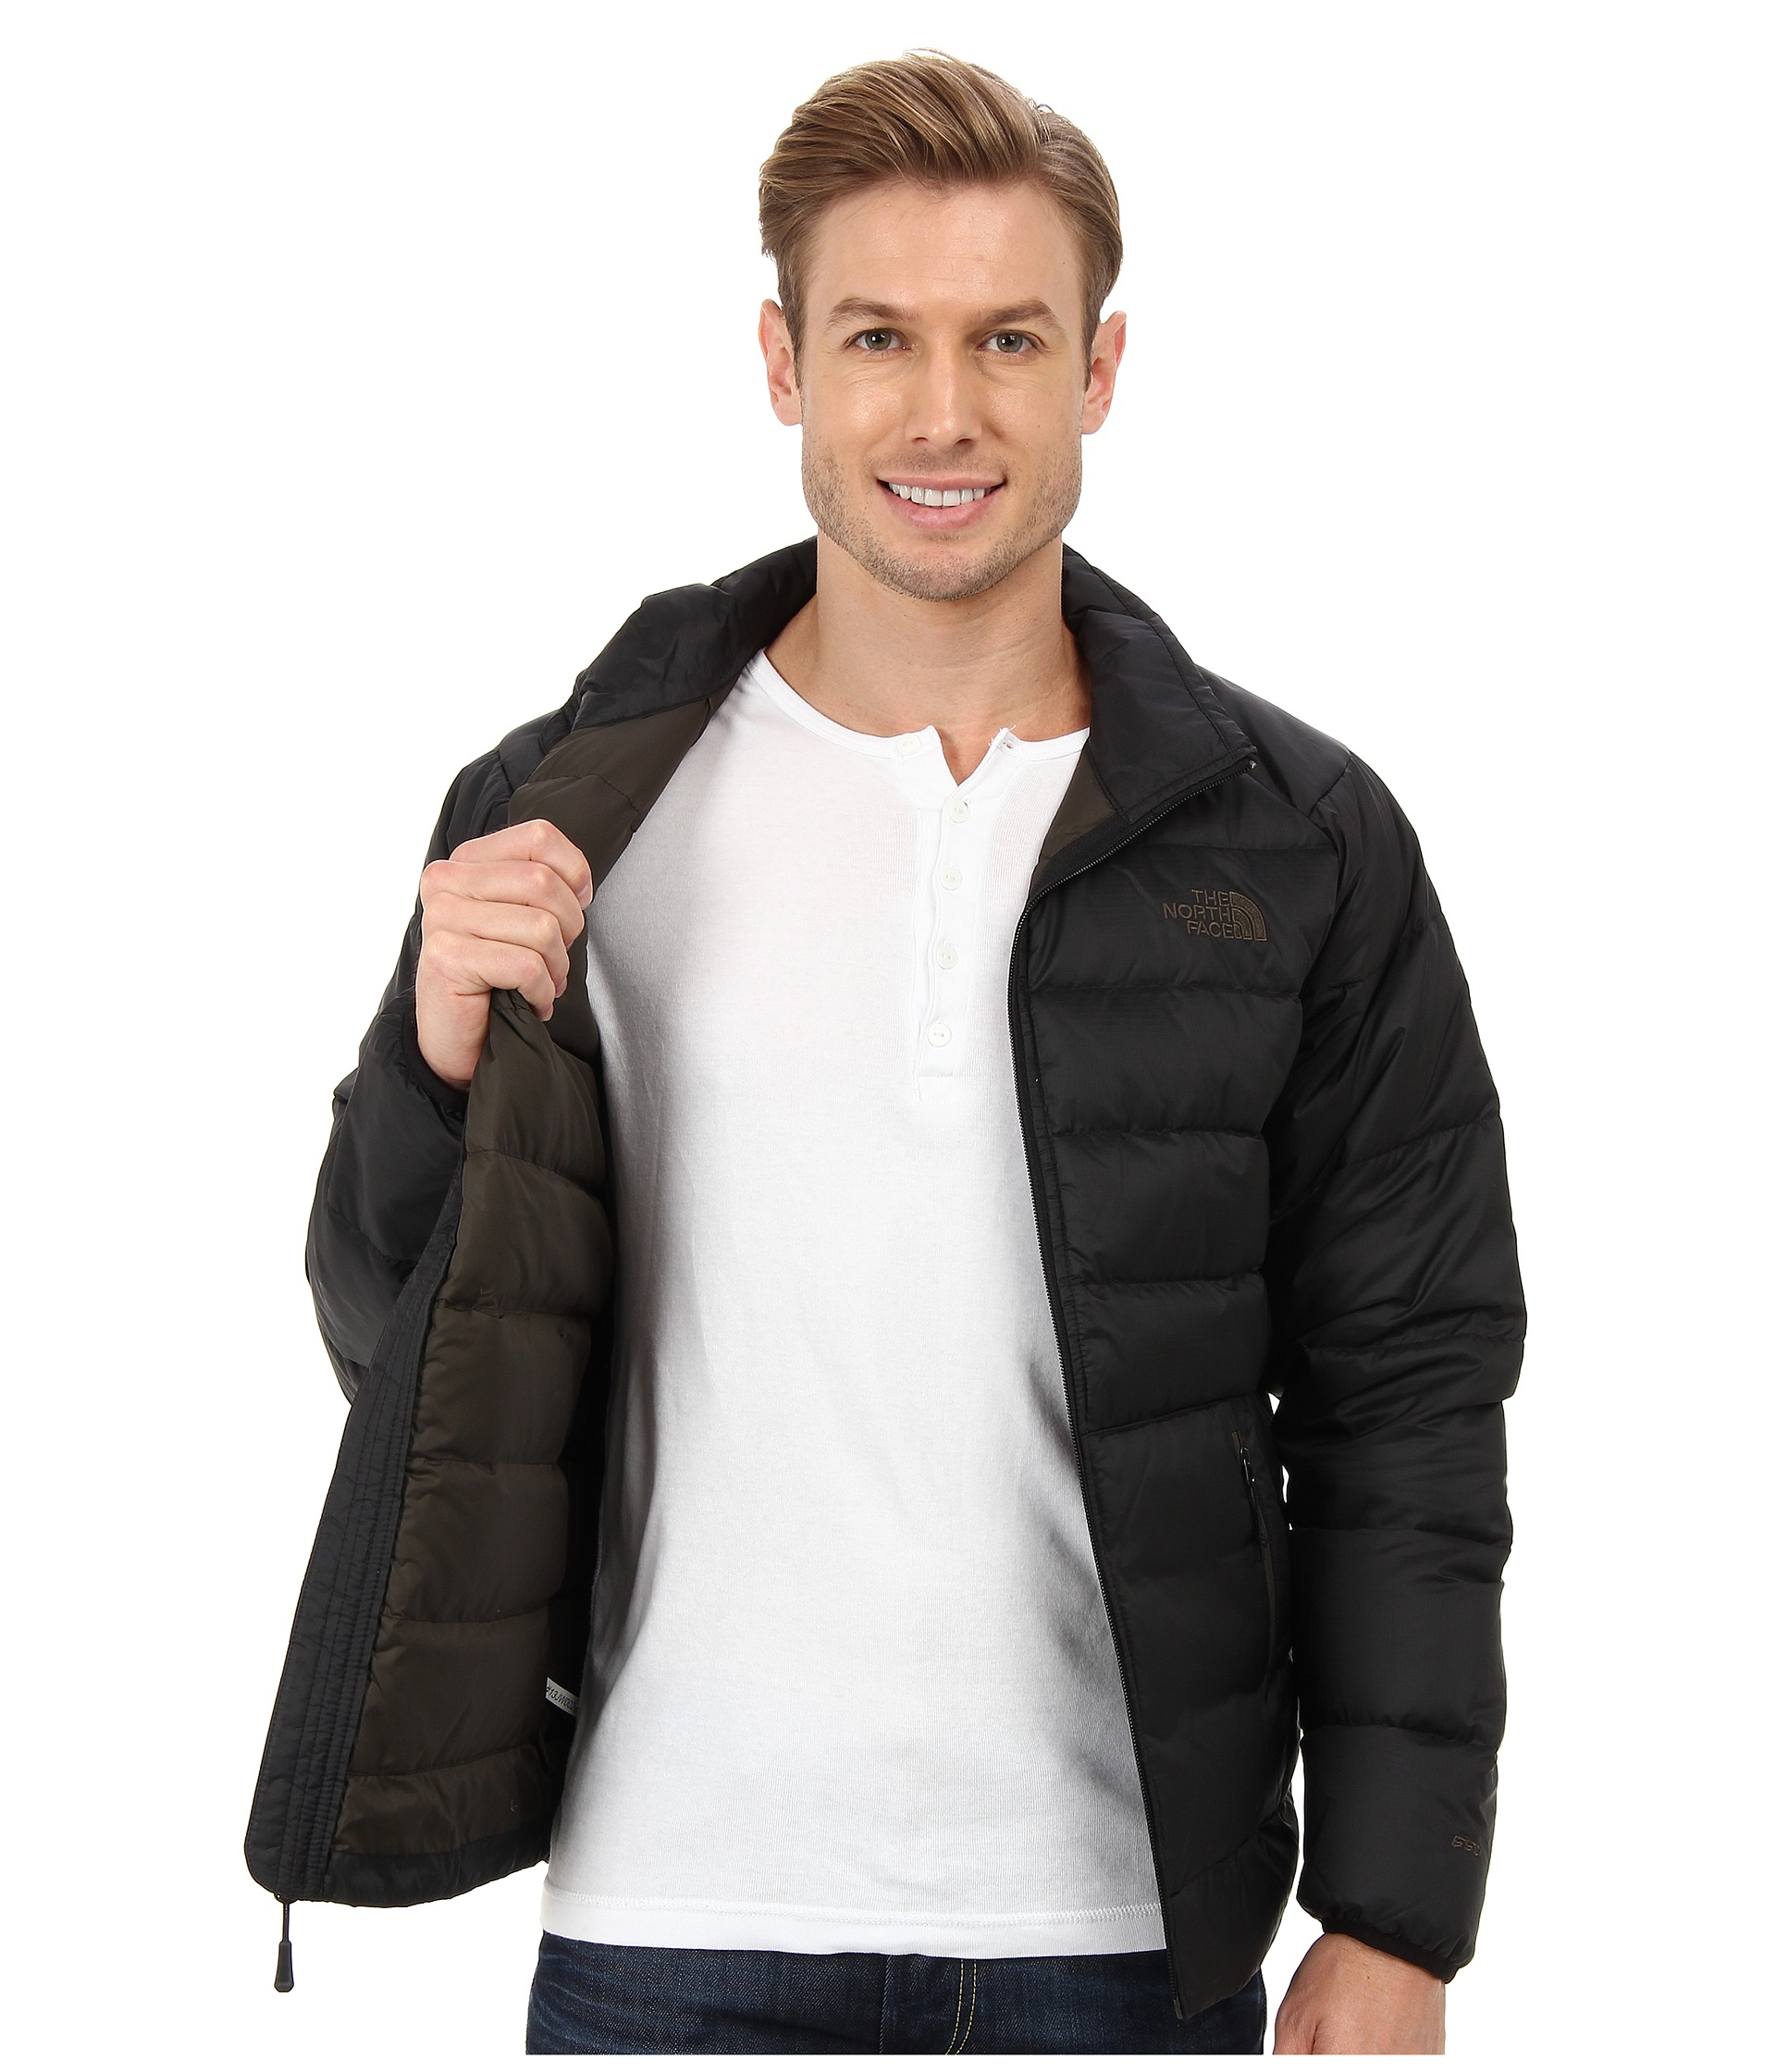 Lyst - The North Face Aconcagua Jacket in Black for Men ab83ea4f3